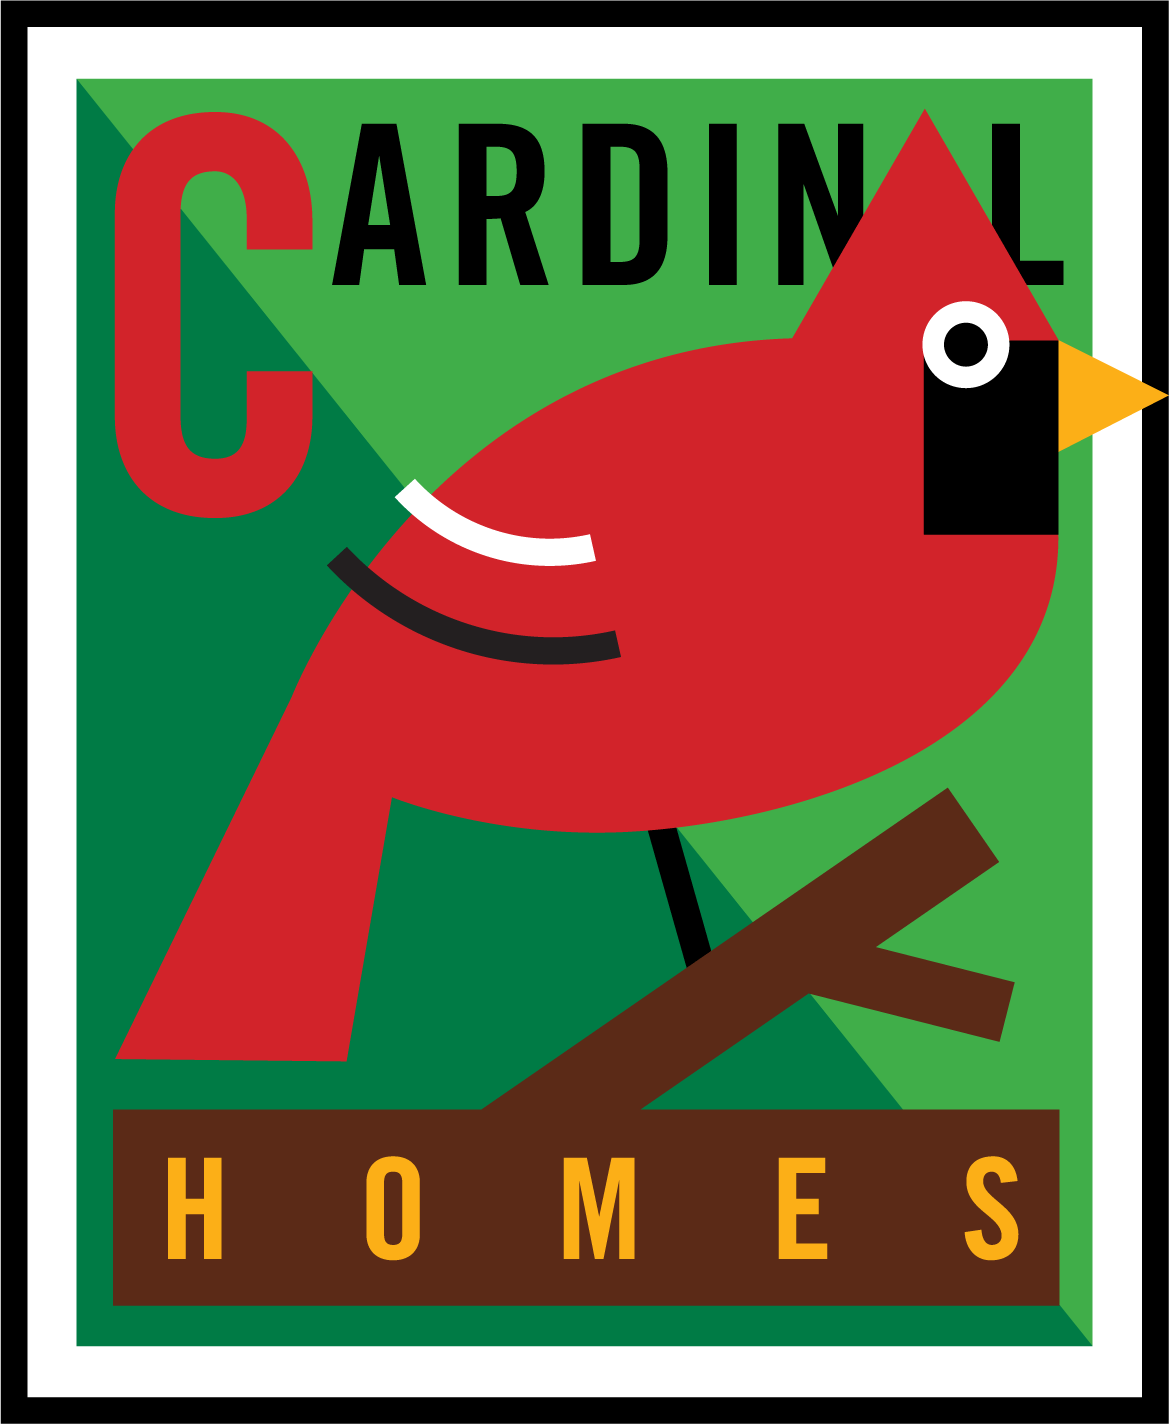 Logo Design, Cardinal Homes, Austin, Texas